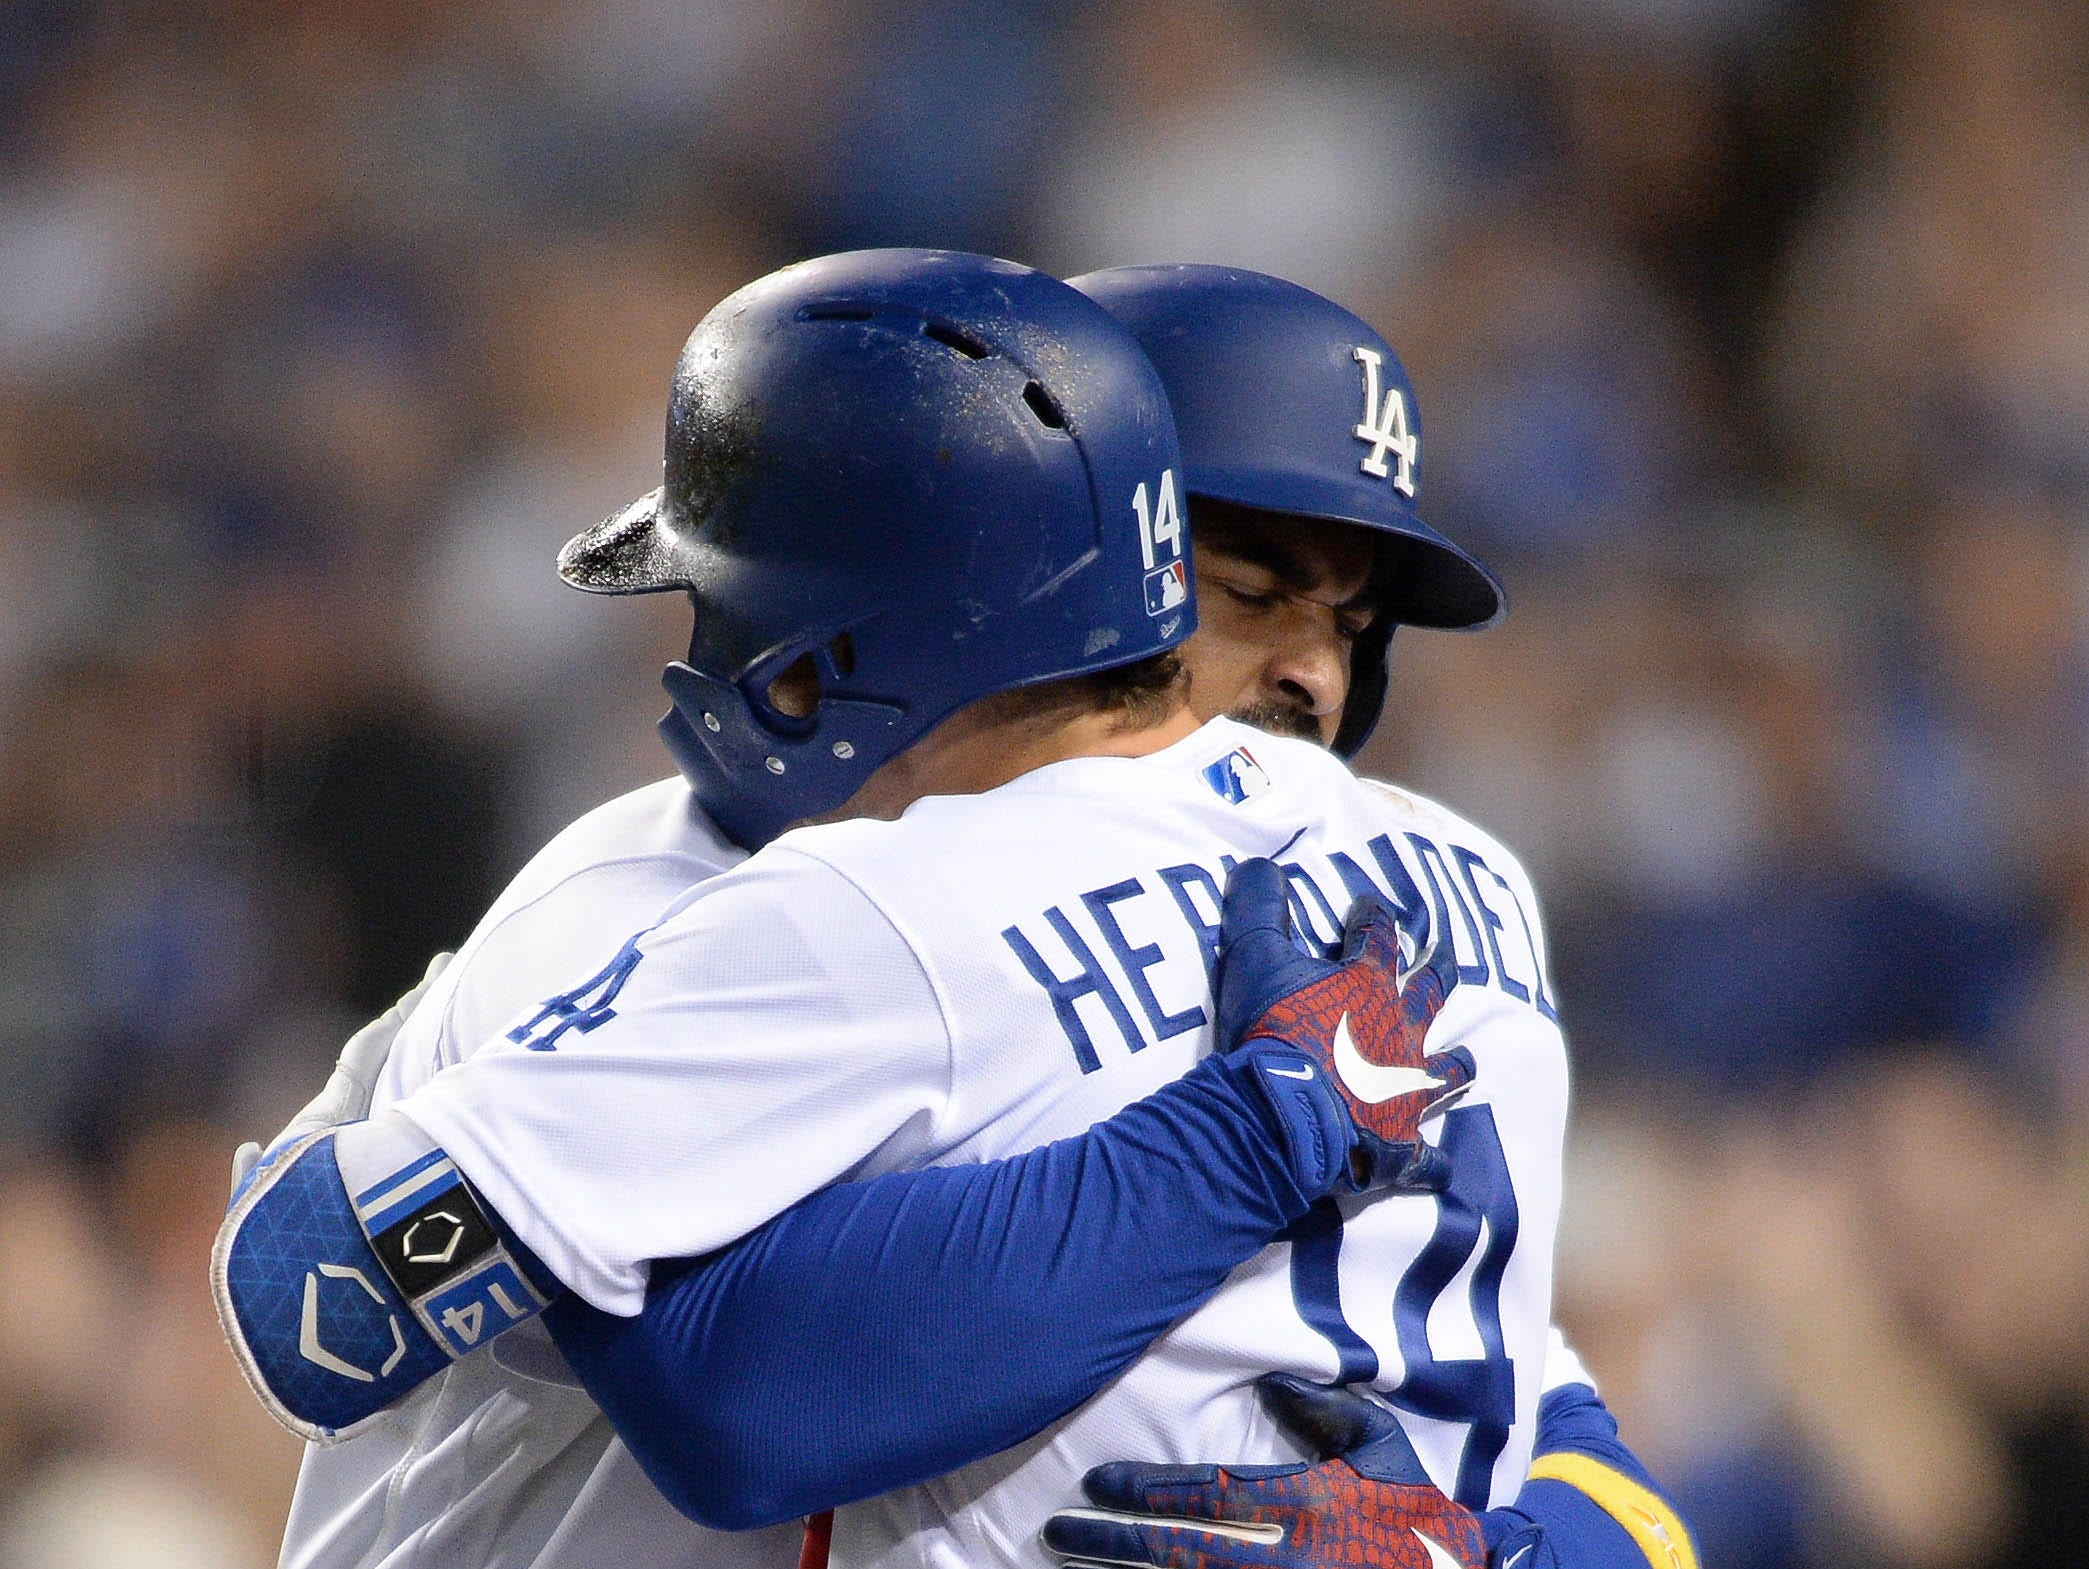 Sep 1, 2018; Los Angeles, CA, USA; Los Angeles Dodgers left fielder Matt Kemp (left) is greeted by center fielder Enrique Hernandez (14) after Kemp hit a three-run home run during the eighth inning against the Arizona Diamondbacks at Dodger Stadium. Mandatory Credit: Orlando Ramirez-USA TODAY Sports